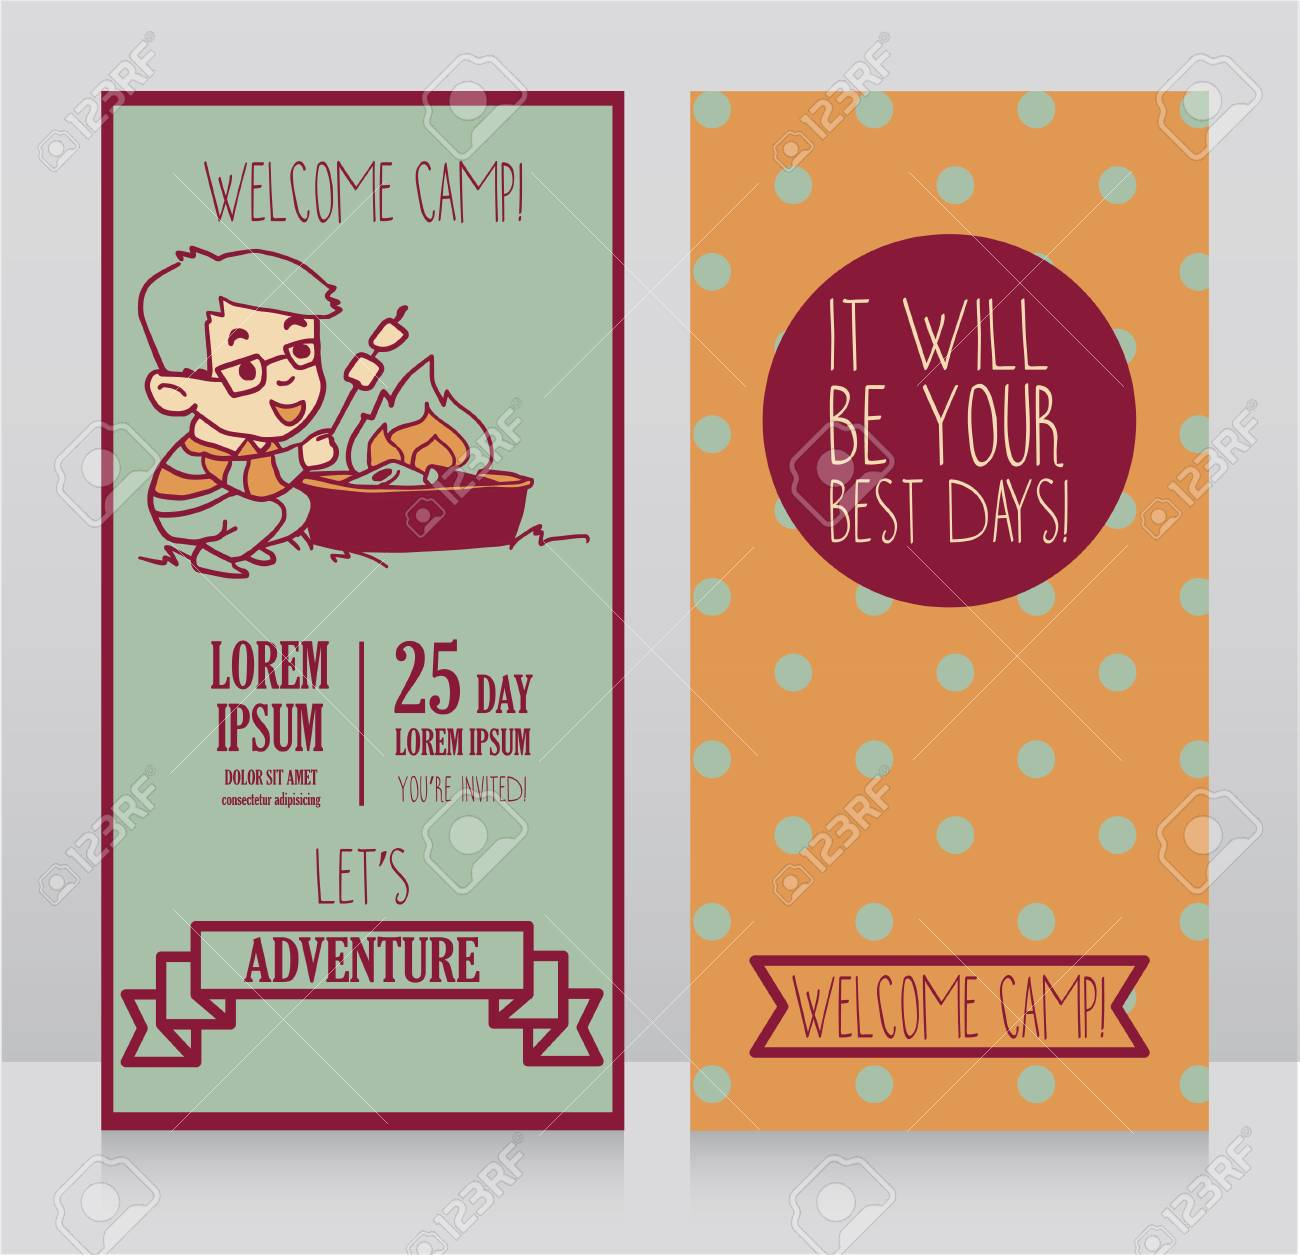 Invitation Template For Kids Camp Vector Illustration Royalty Free